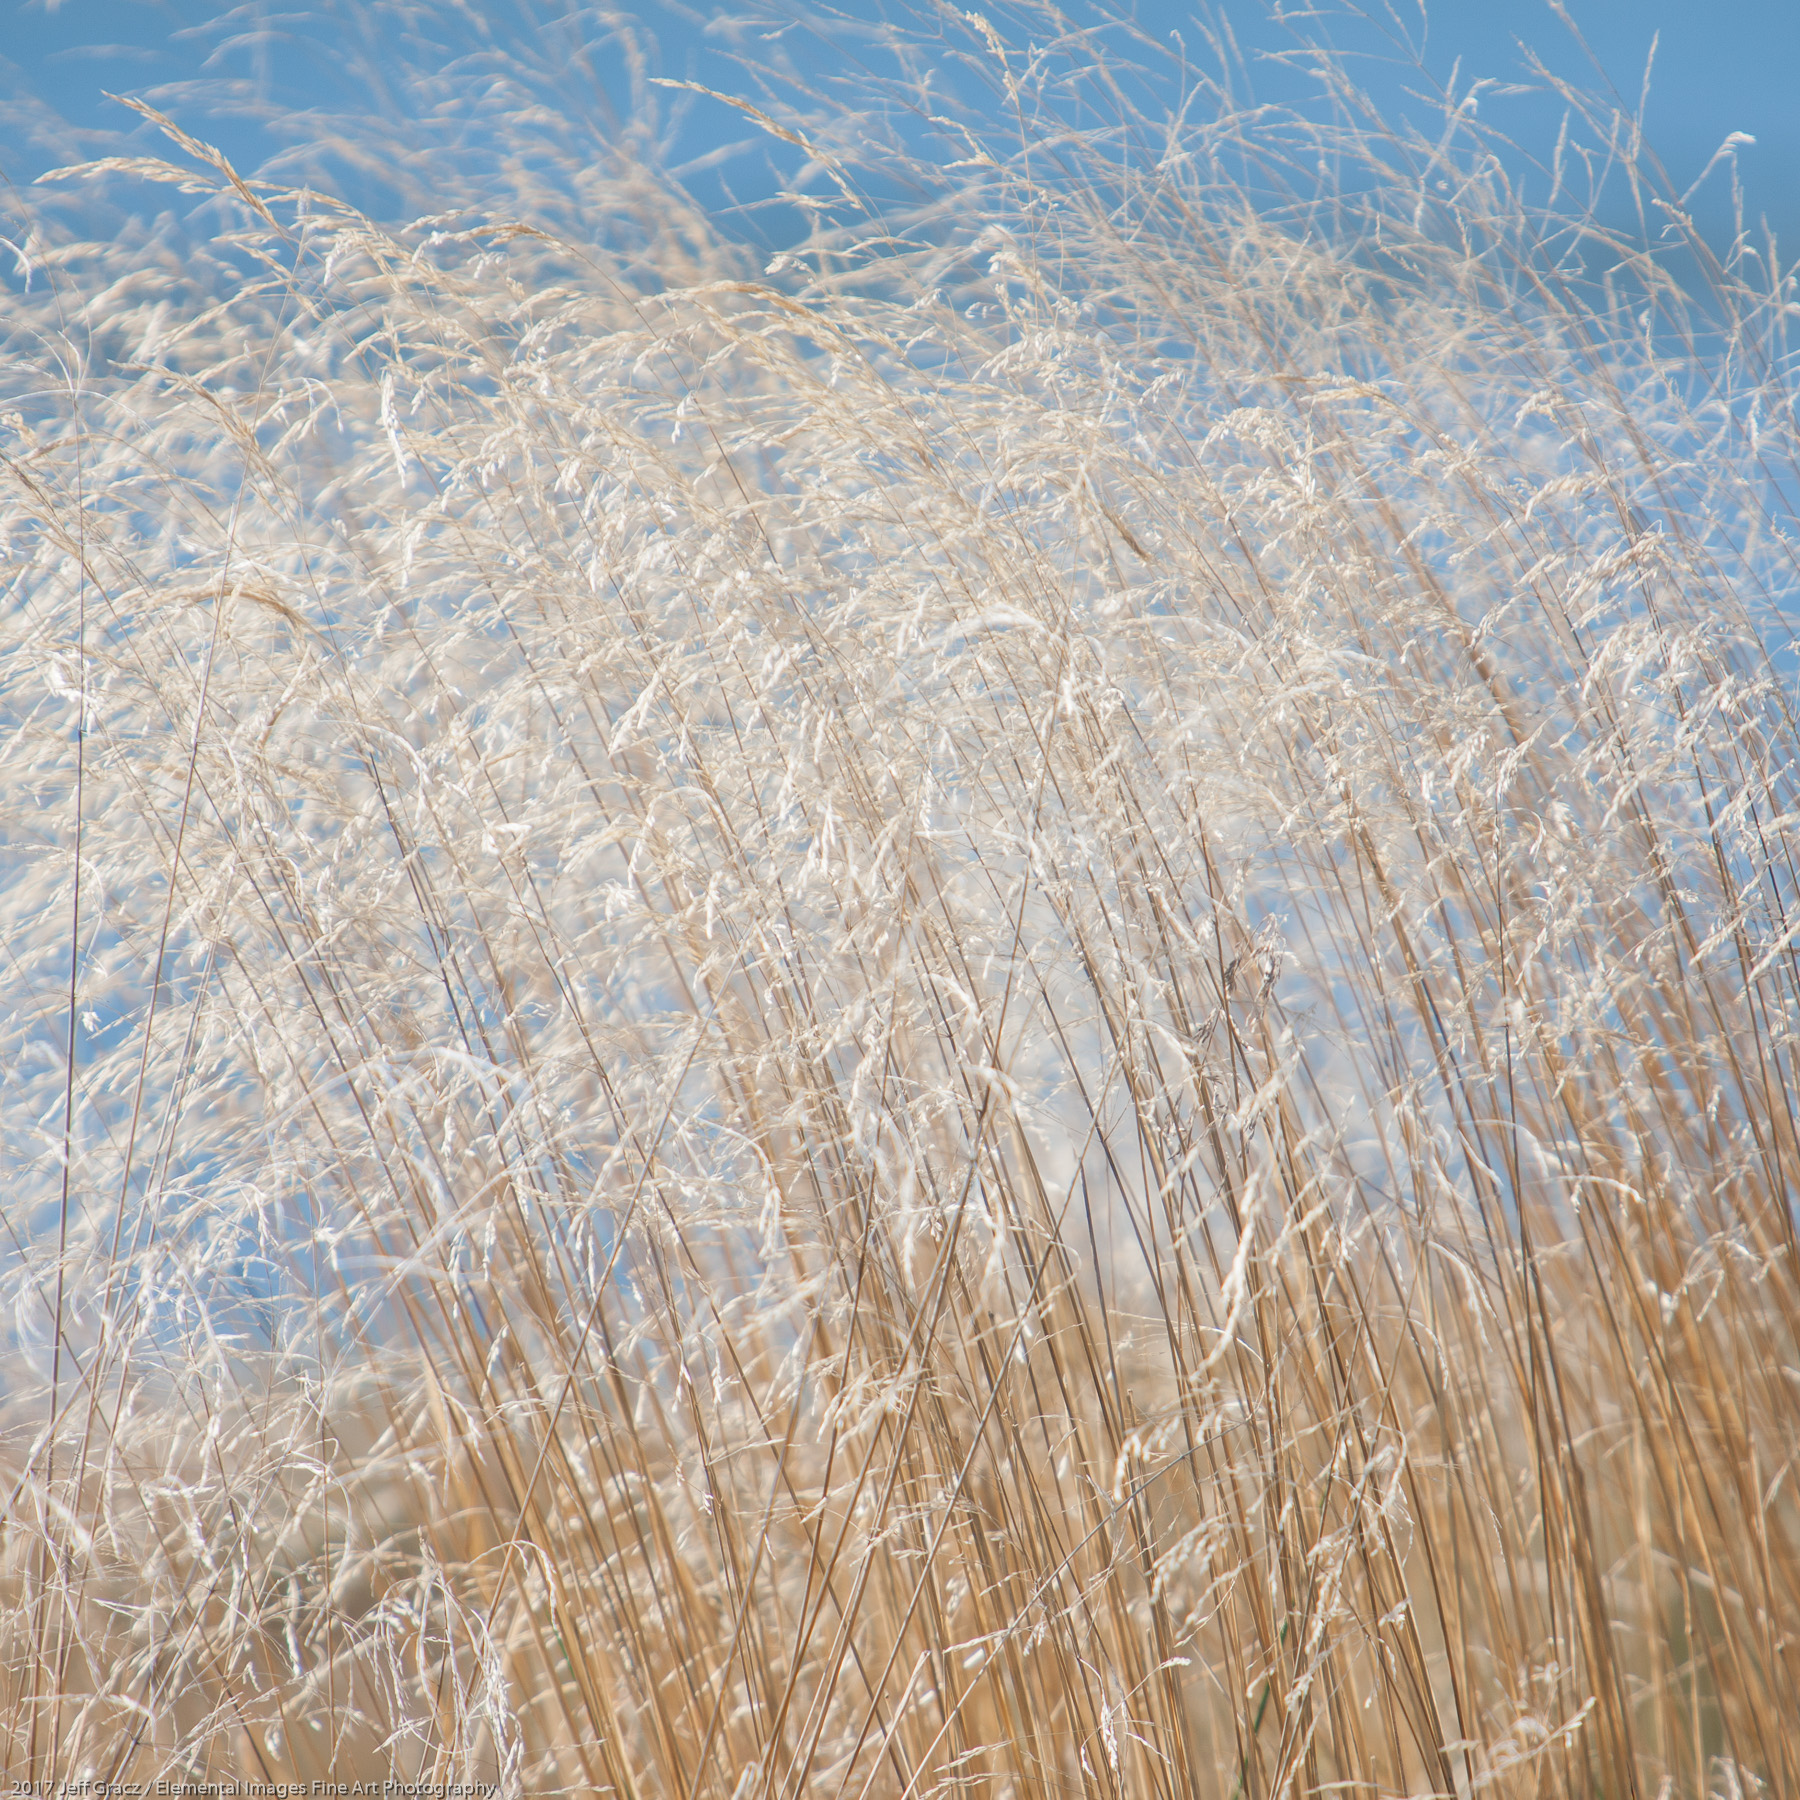 Grasses #162 | Three Rocks | OR | USA - © 2017 Jeff Gracz / Elemental Images Fine Art Photography - All Rights Reserved Worldwide